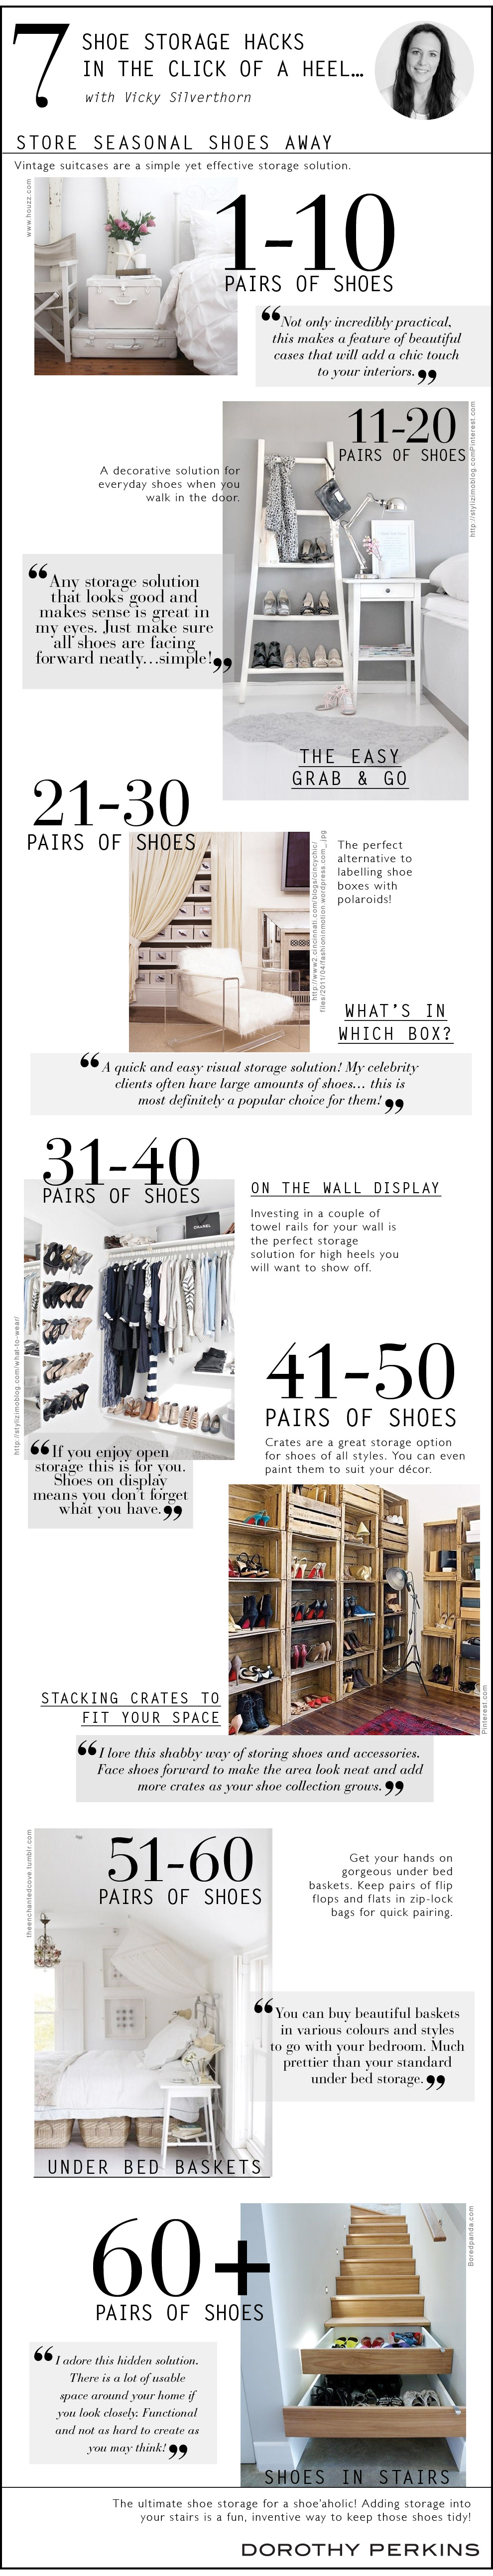 UK-Dorothy-Perkins-Shoes-Infographic-wk11 (2)